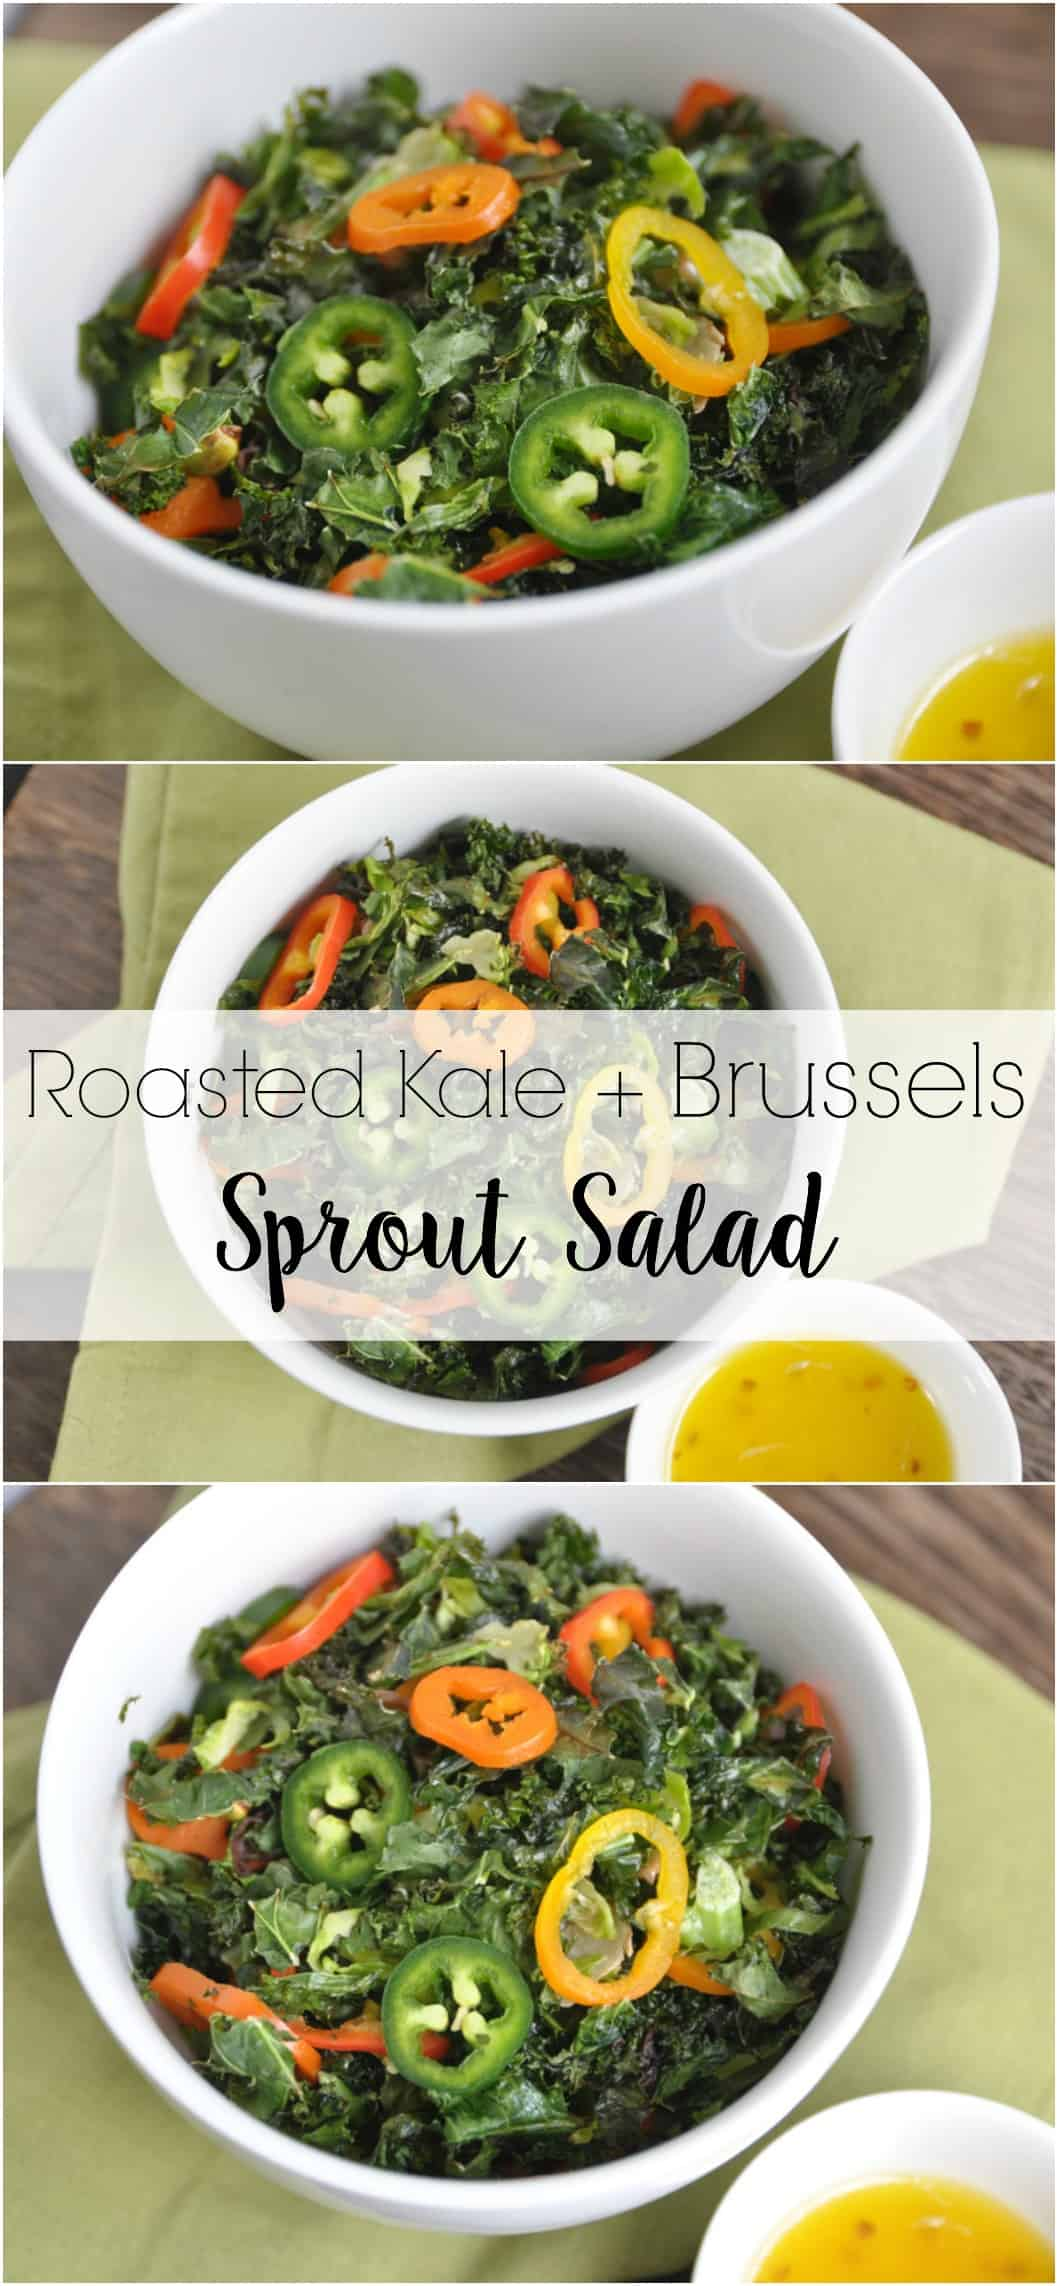 Roasted Kale and Brussels Sprout Salad